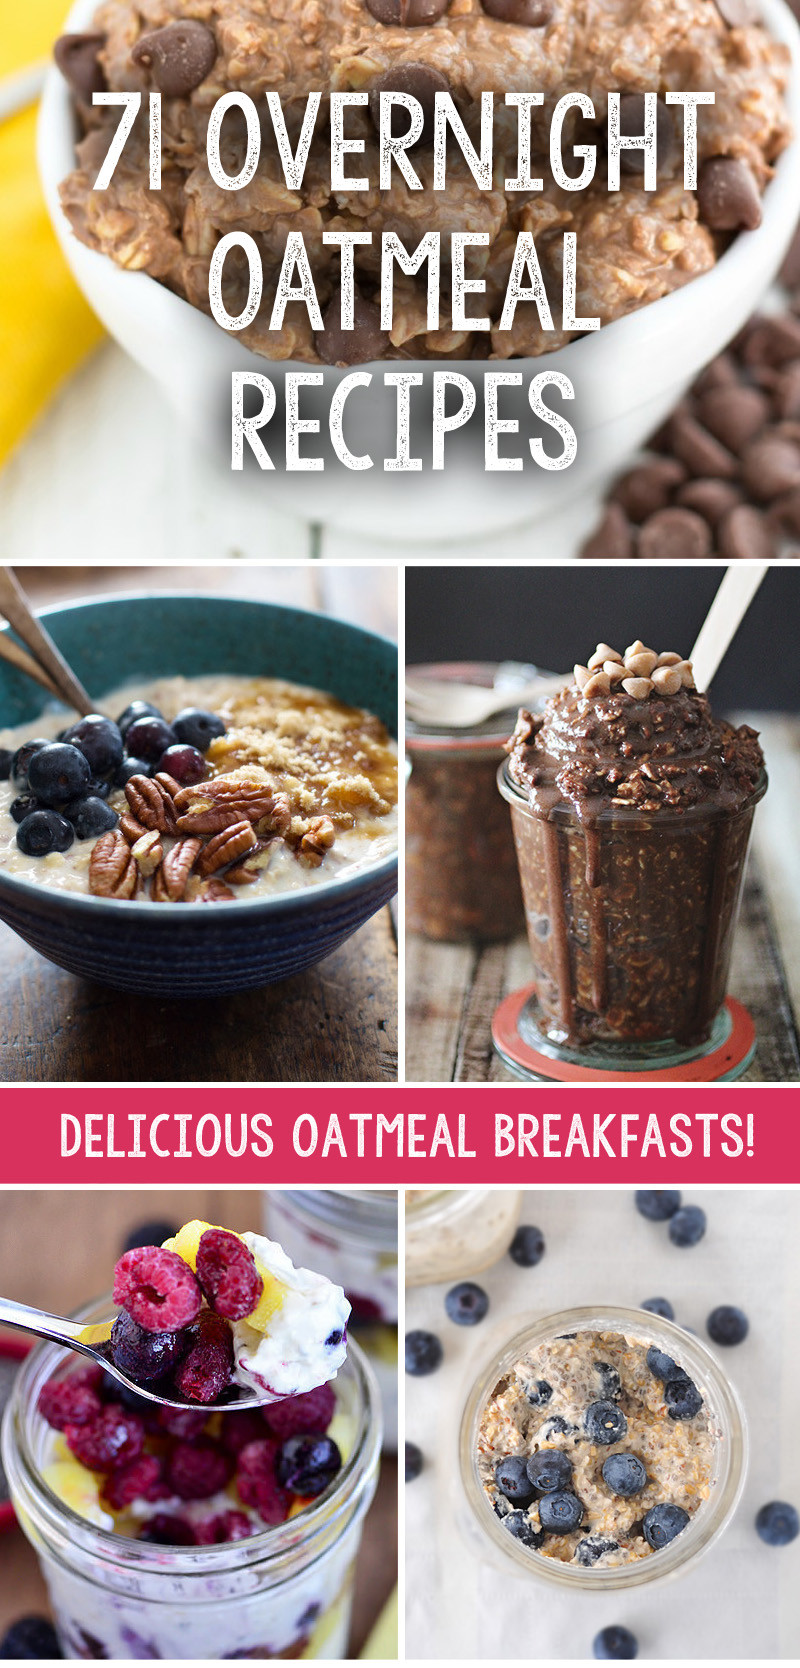 Oatmeal Recipes For Weight Loss  We have collected 71 incredible overnight oatmeal recipes